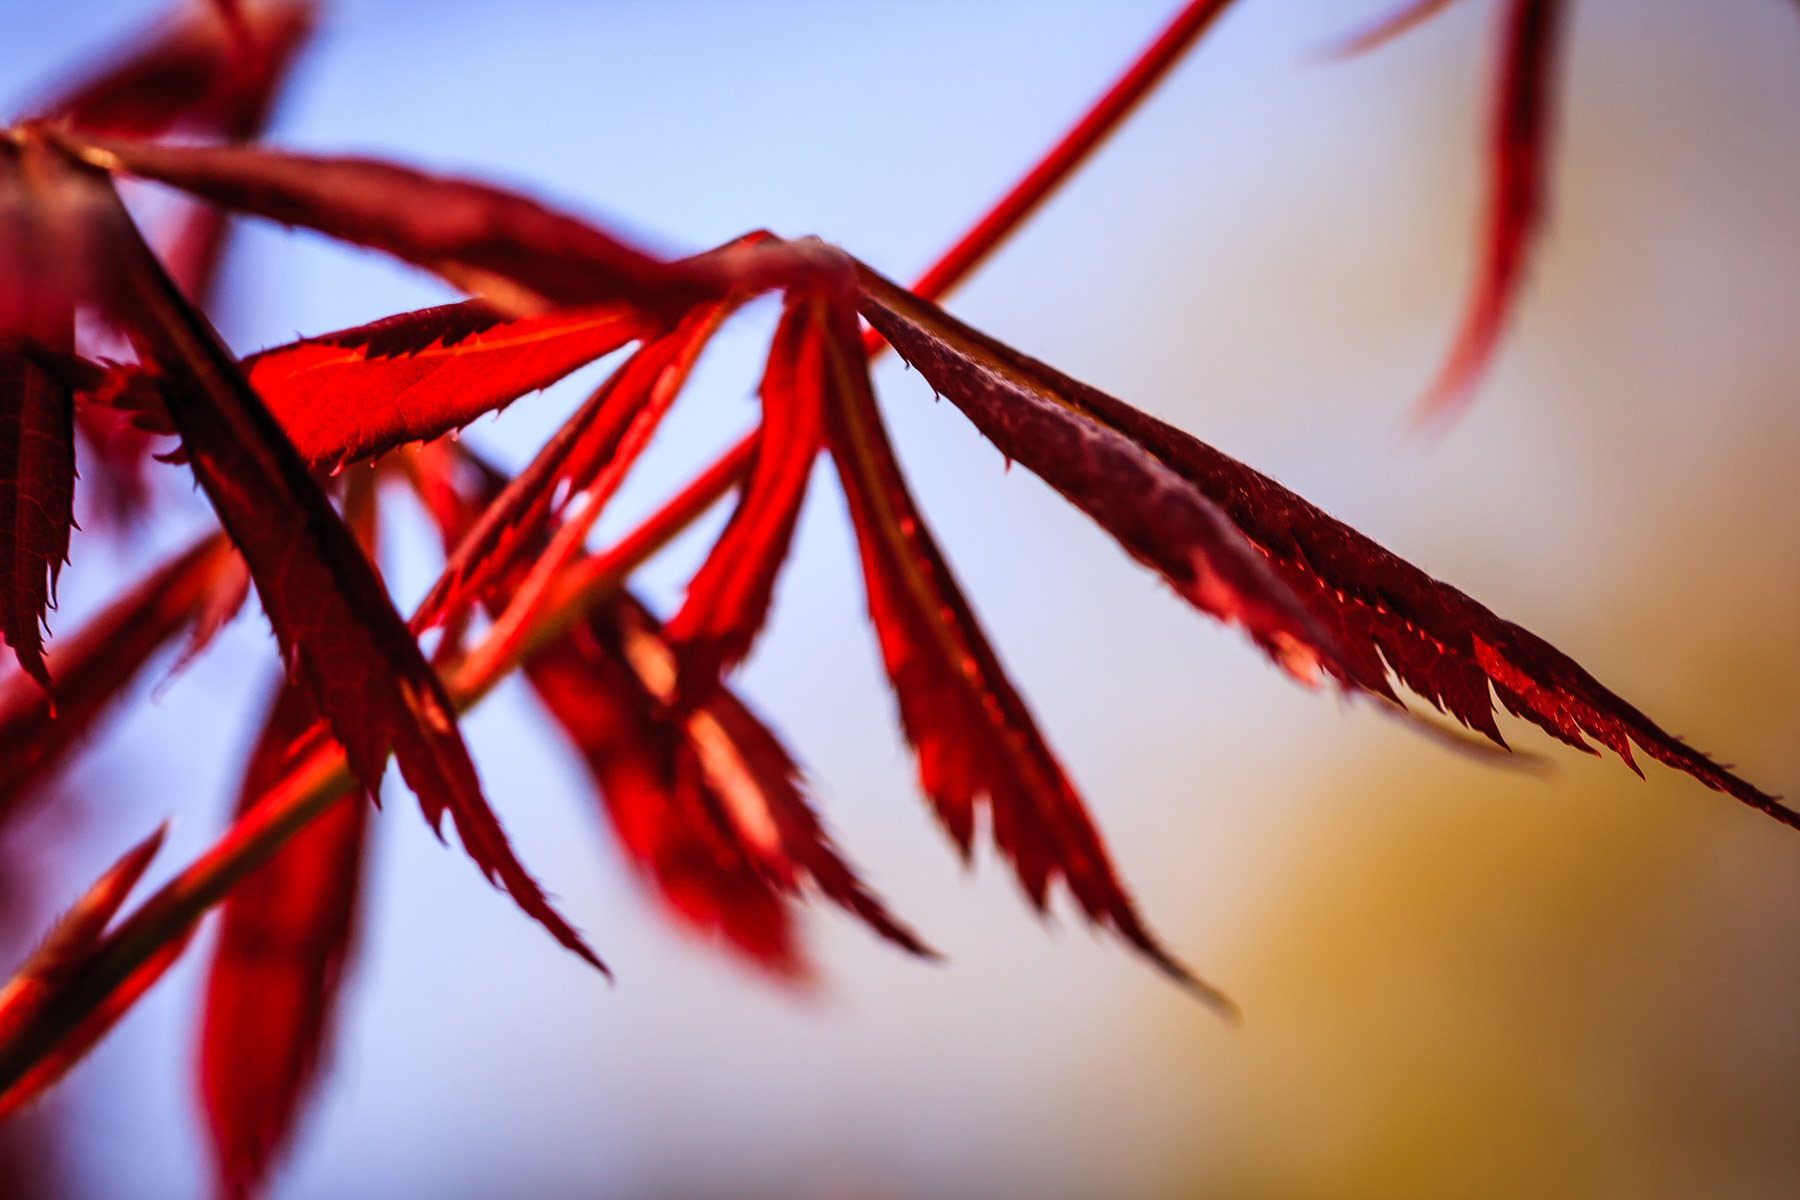 Japanese maple tree leaves at my mother's house, Tyler, Texas.